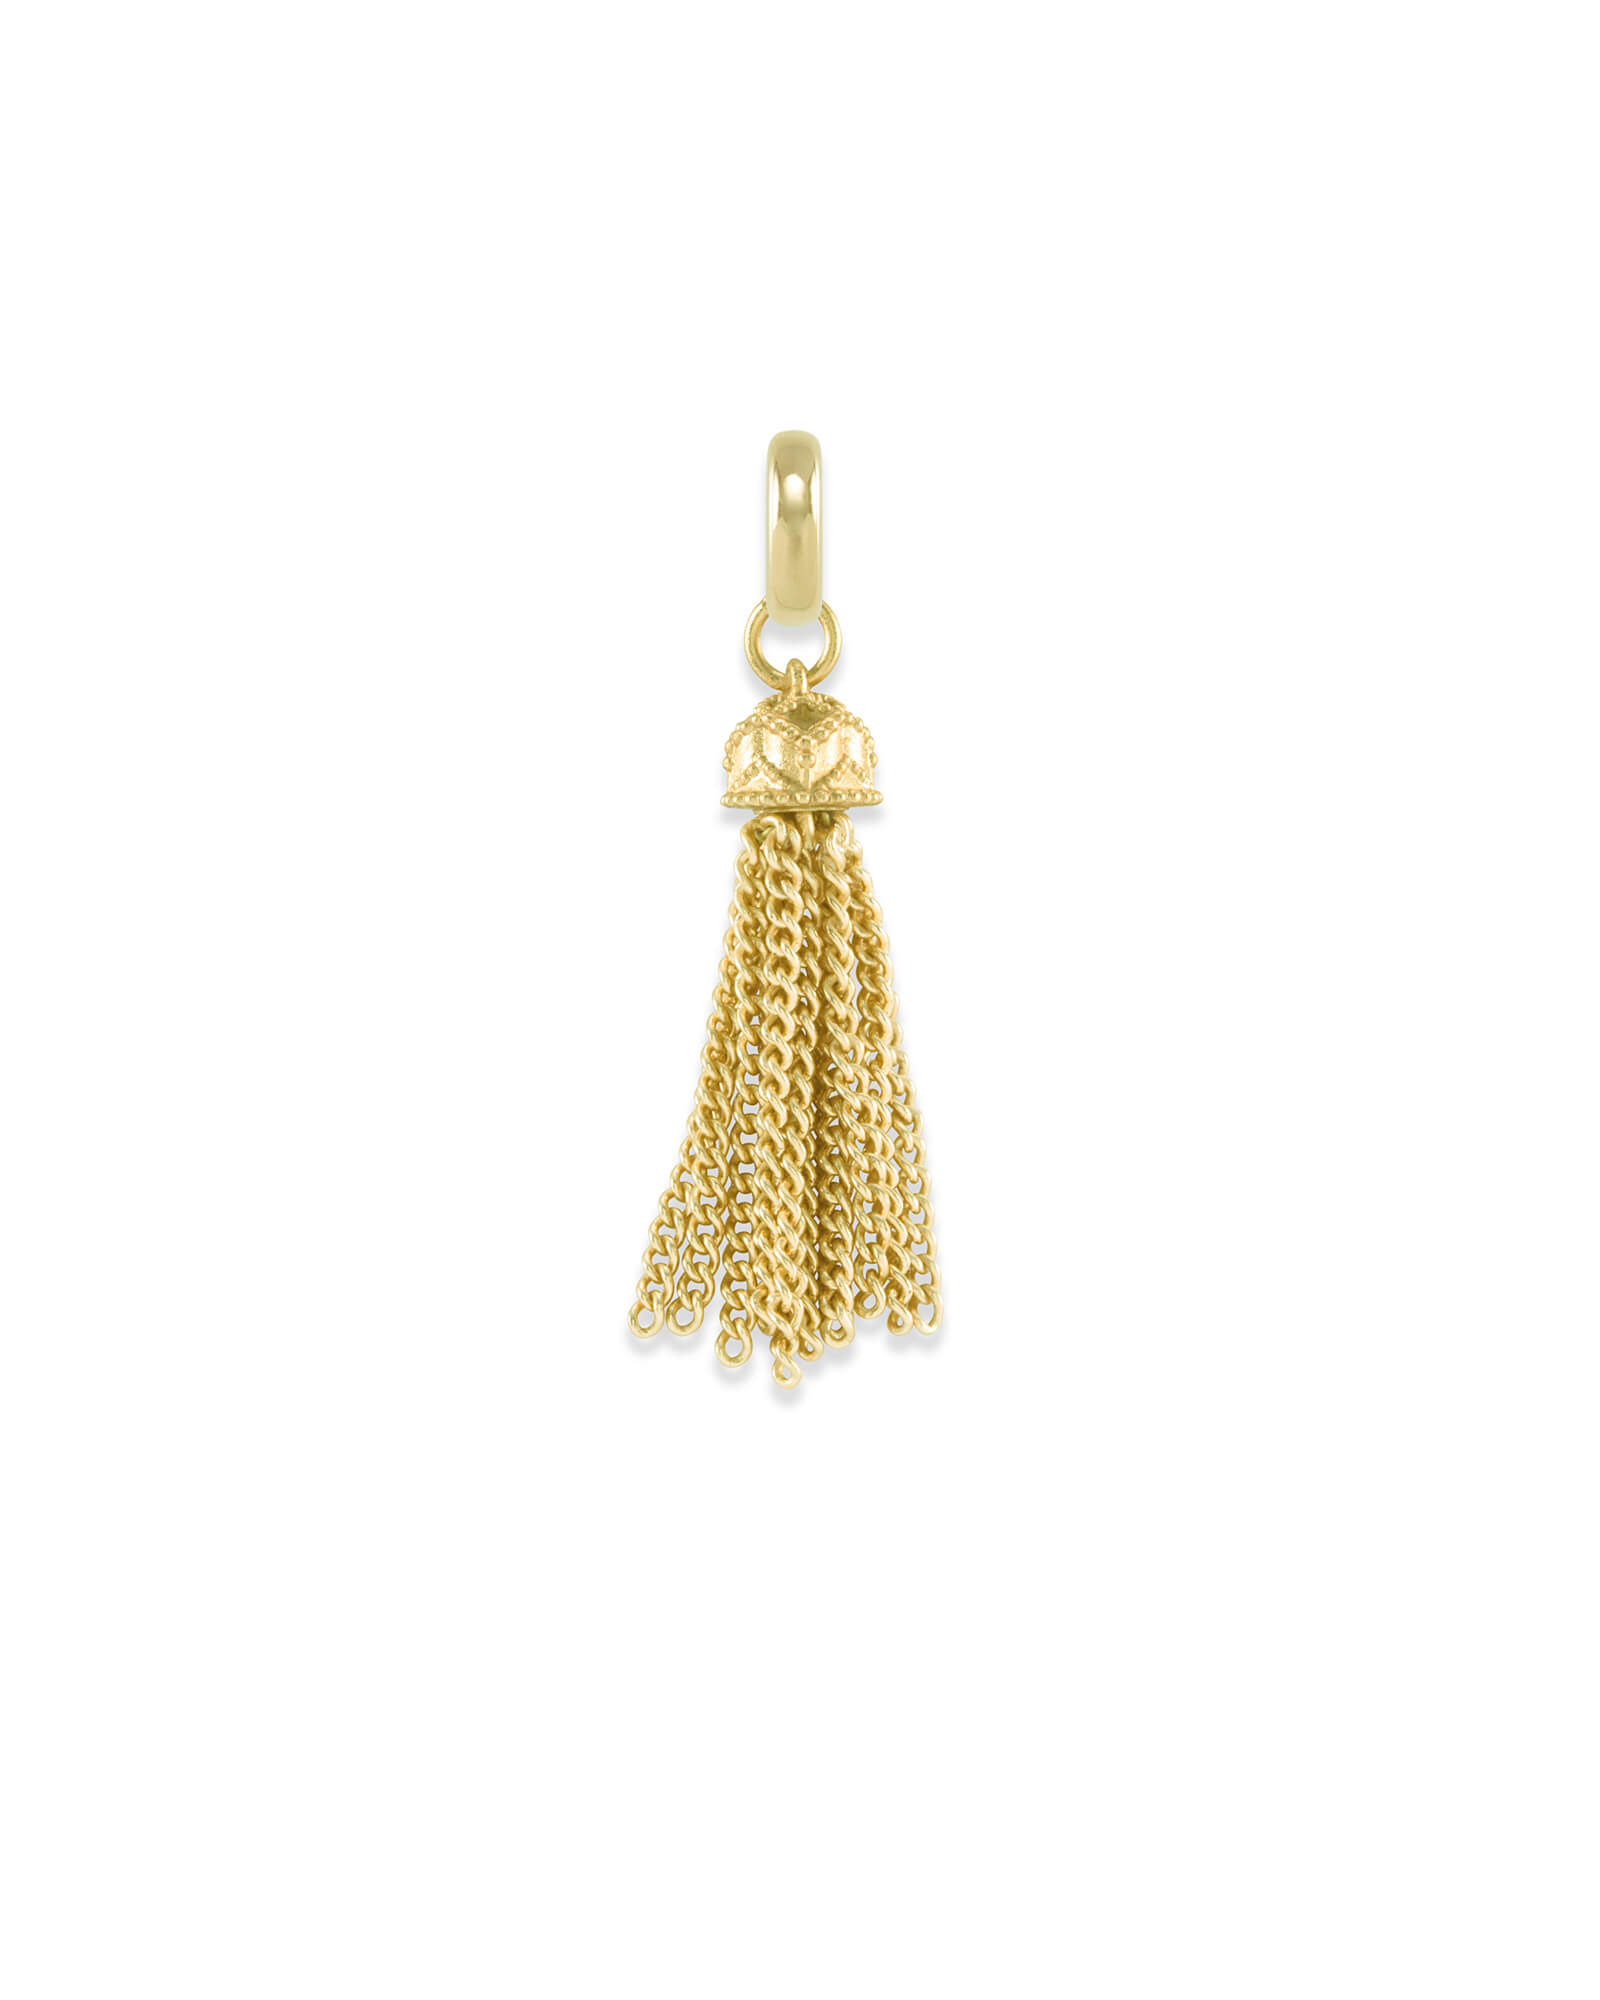 Small Tassel Charm in Gold